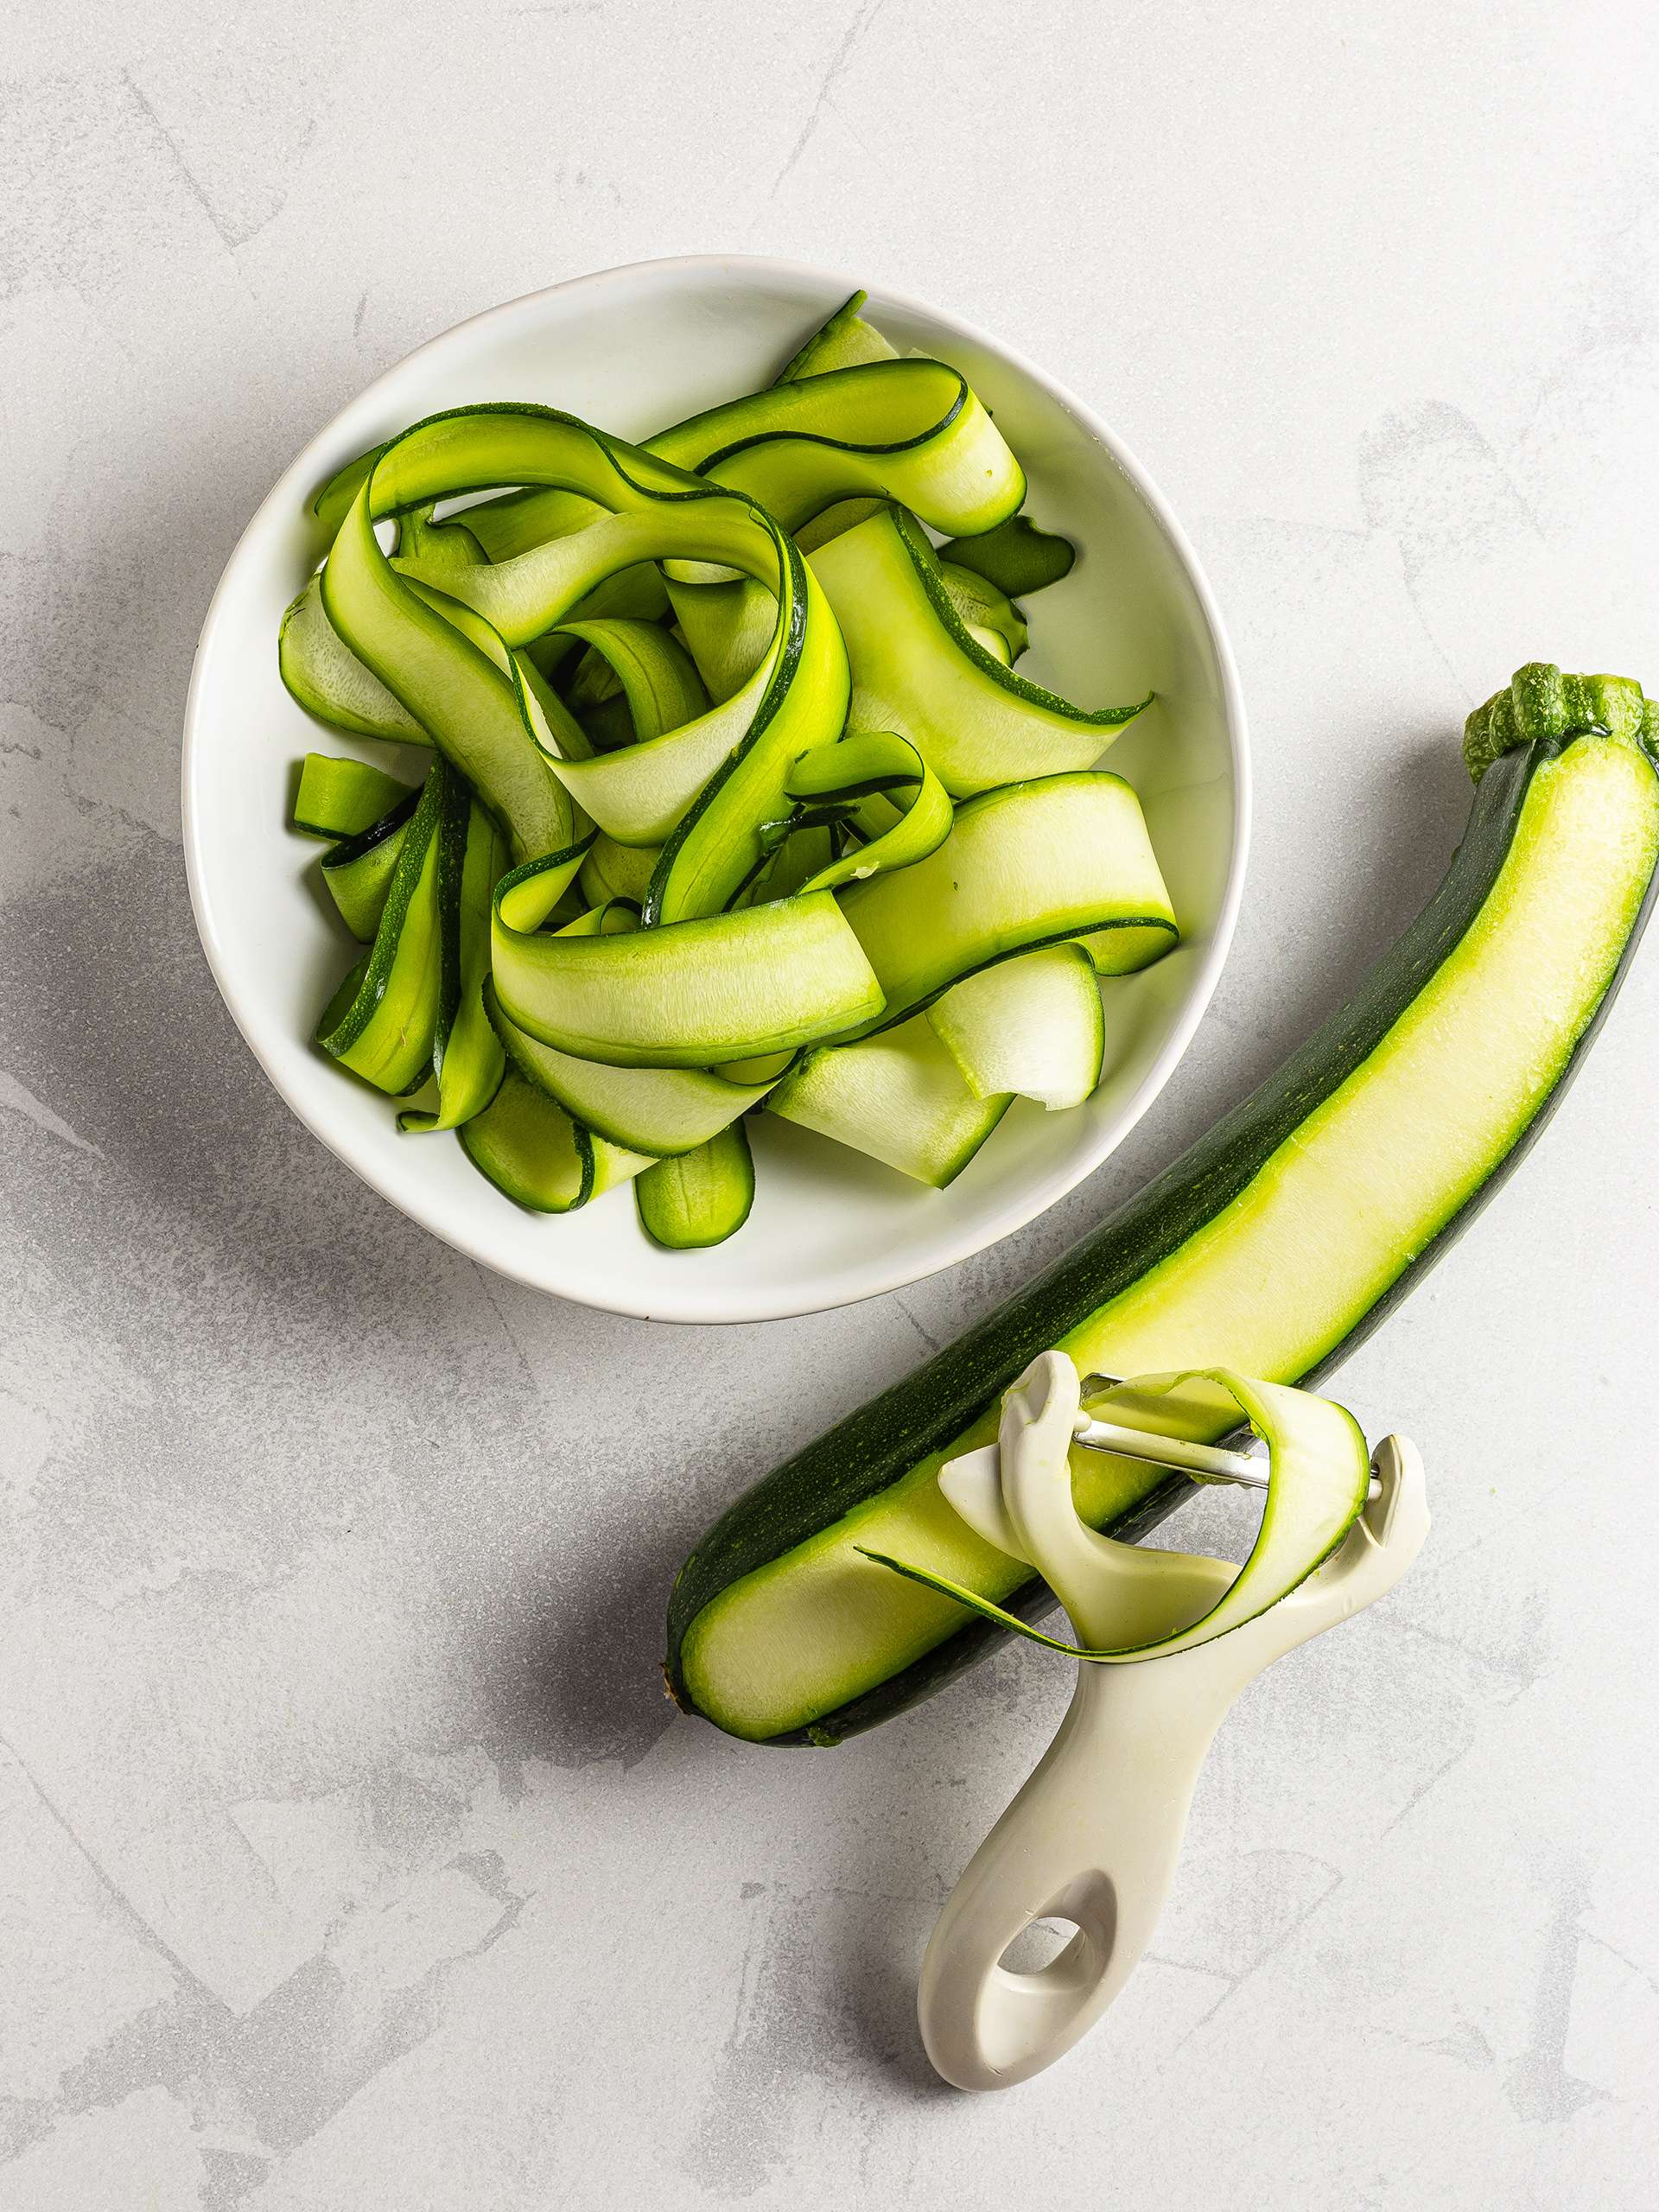 Shaved zucchini ribbons